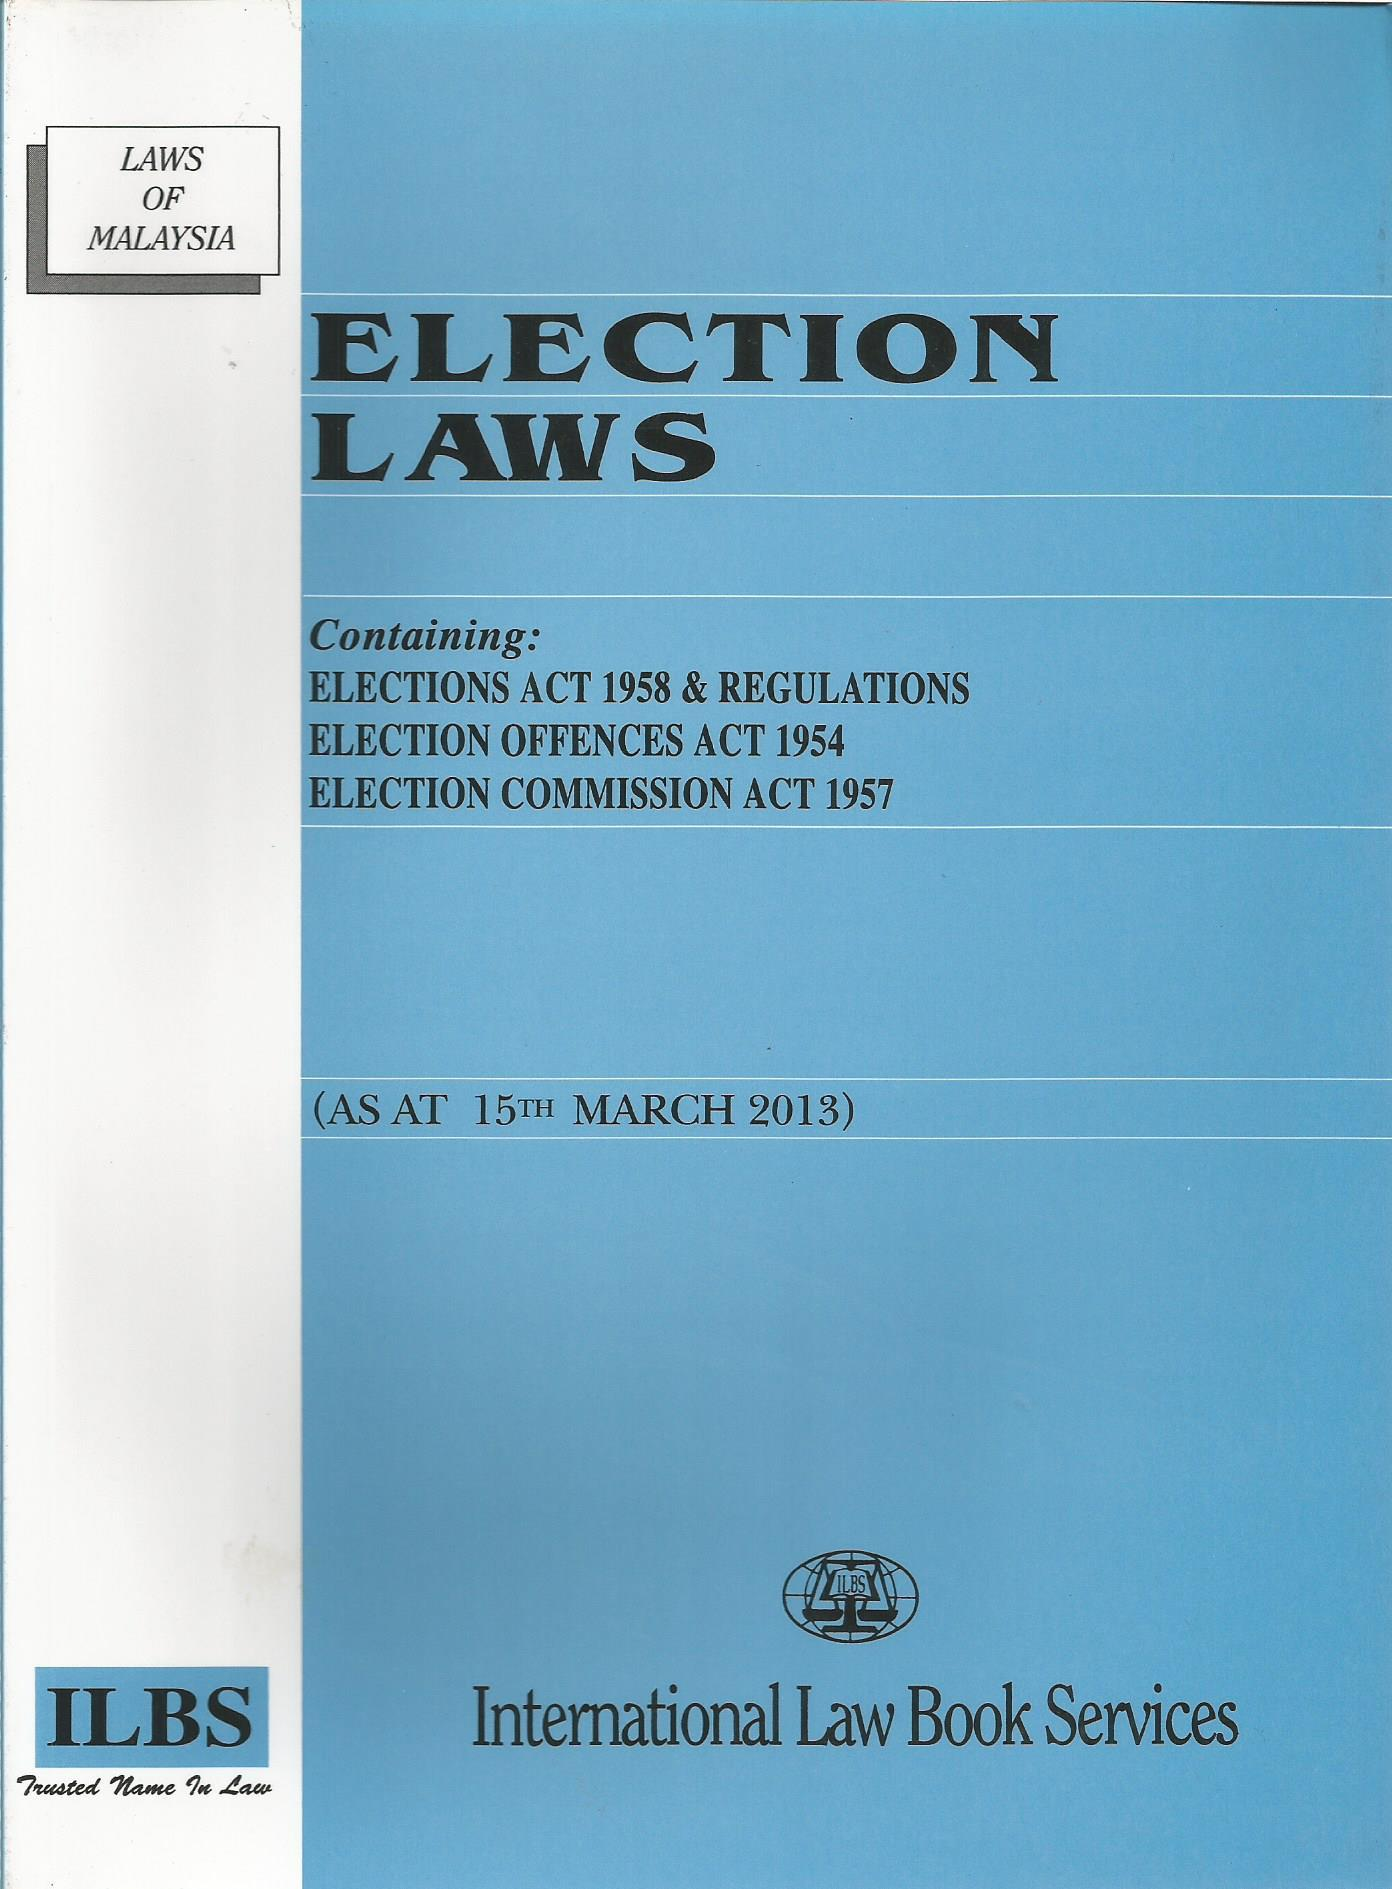 election laws rm29.5 0.3750001.jpg